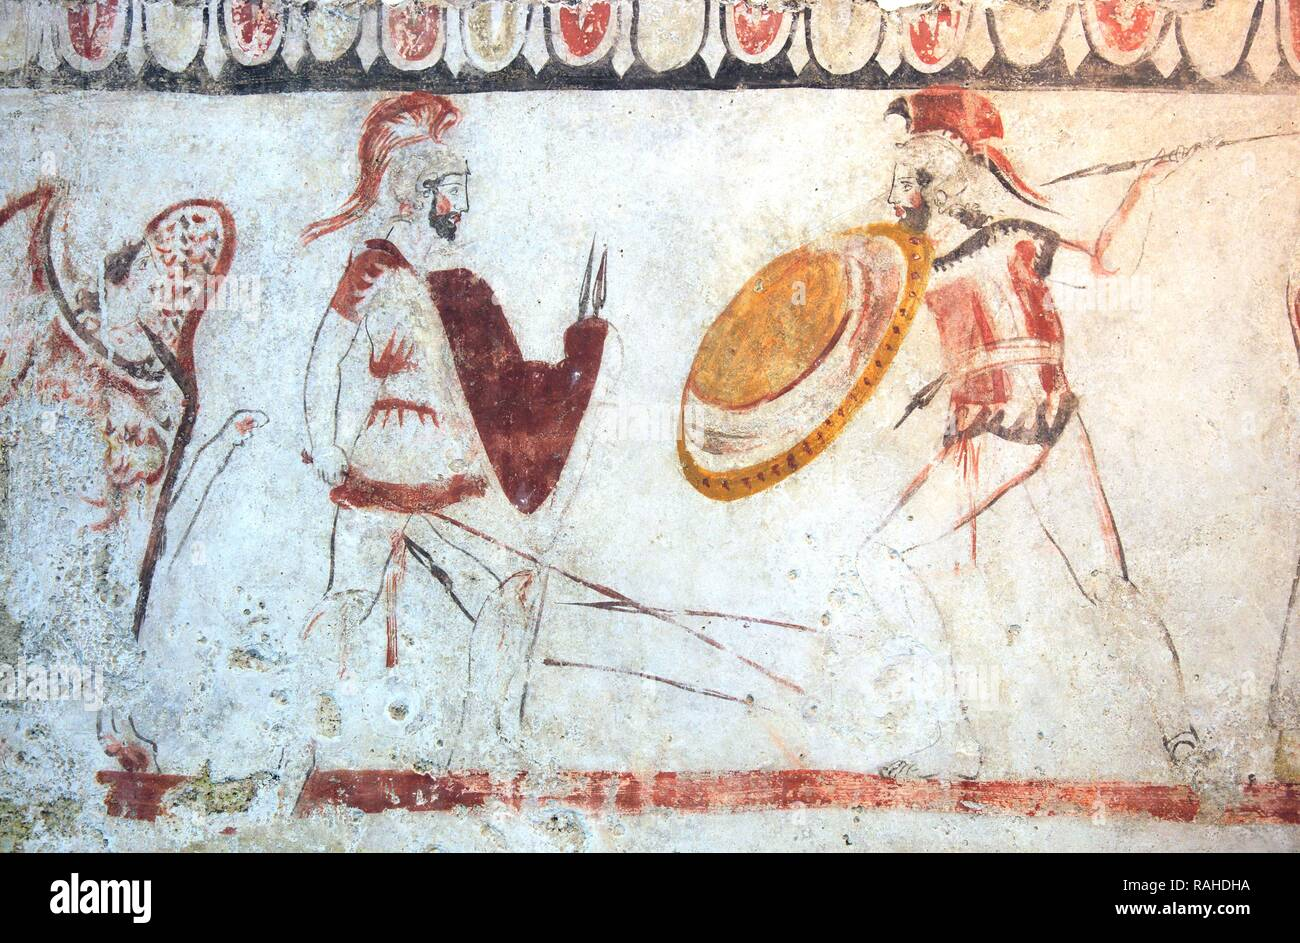 Grave painting from a chambered tomb, about 480 BC., Lucani period, Museum of Paestum, Campania, Italy, Europe - Stock Image